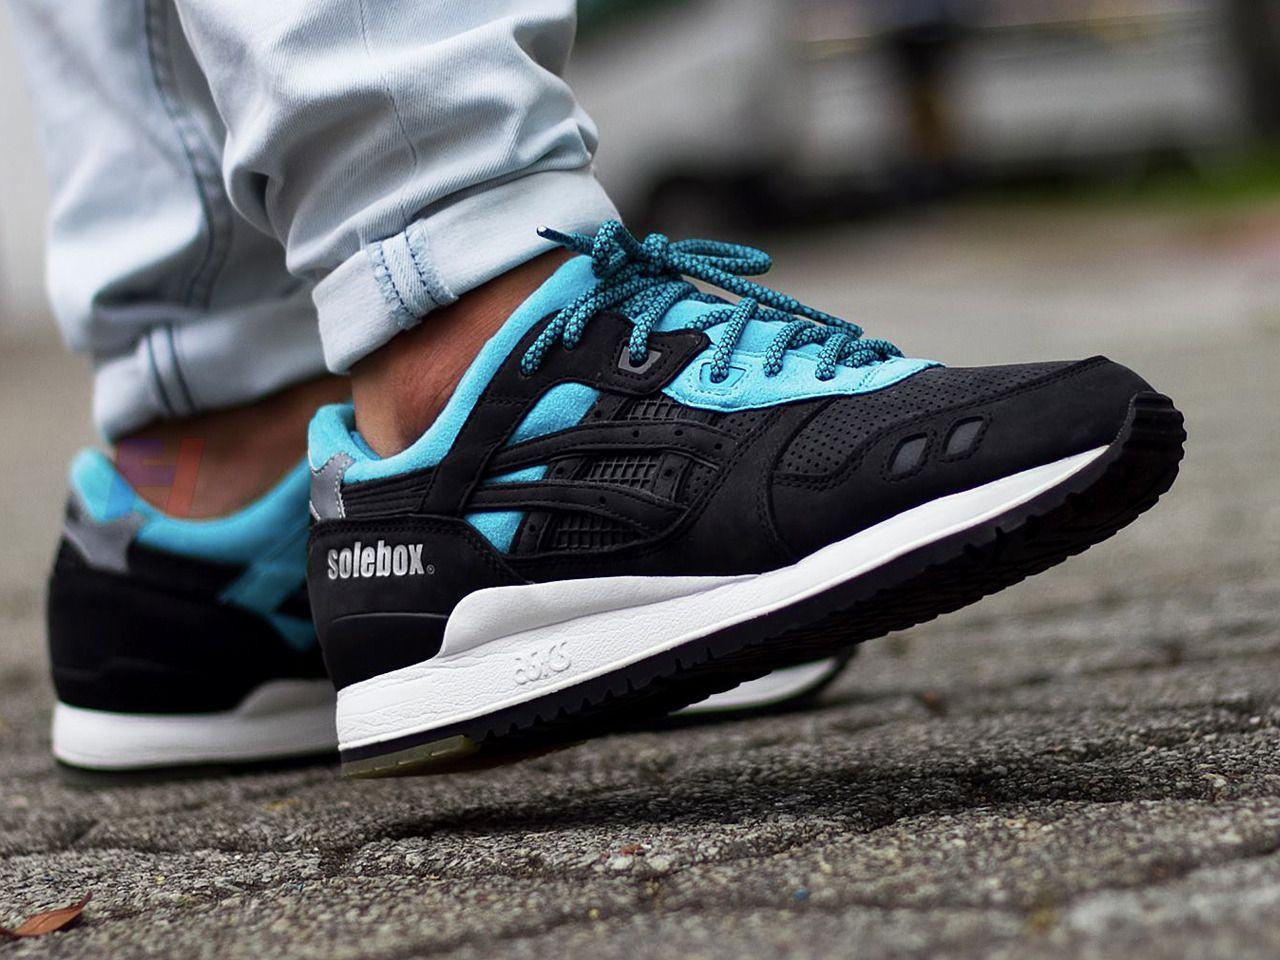 Solebox x ASICS Gel Lyte III Blue Carpenter Bee | The Sole